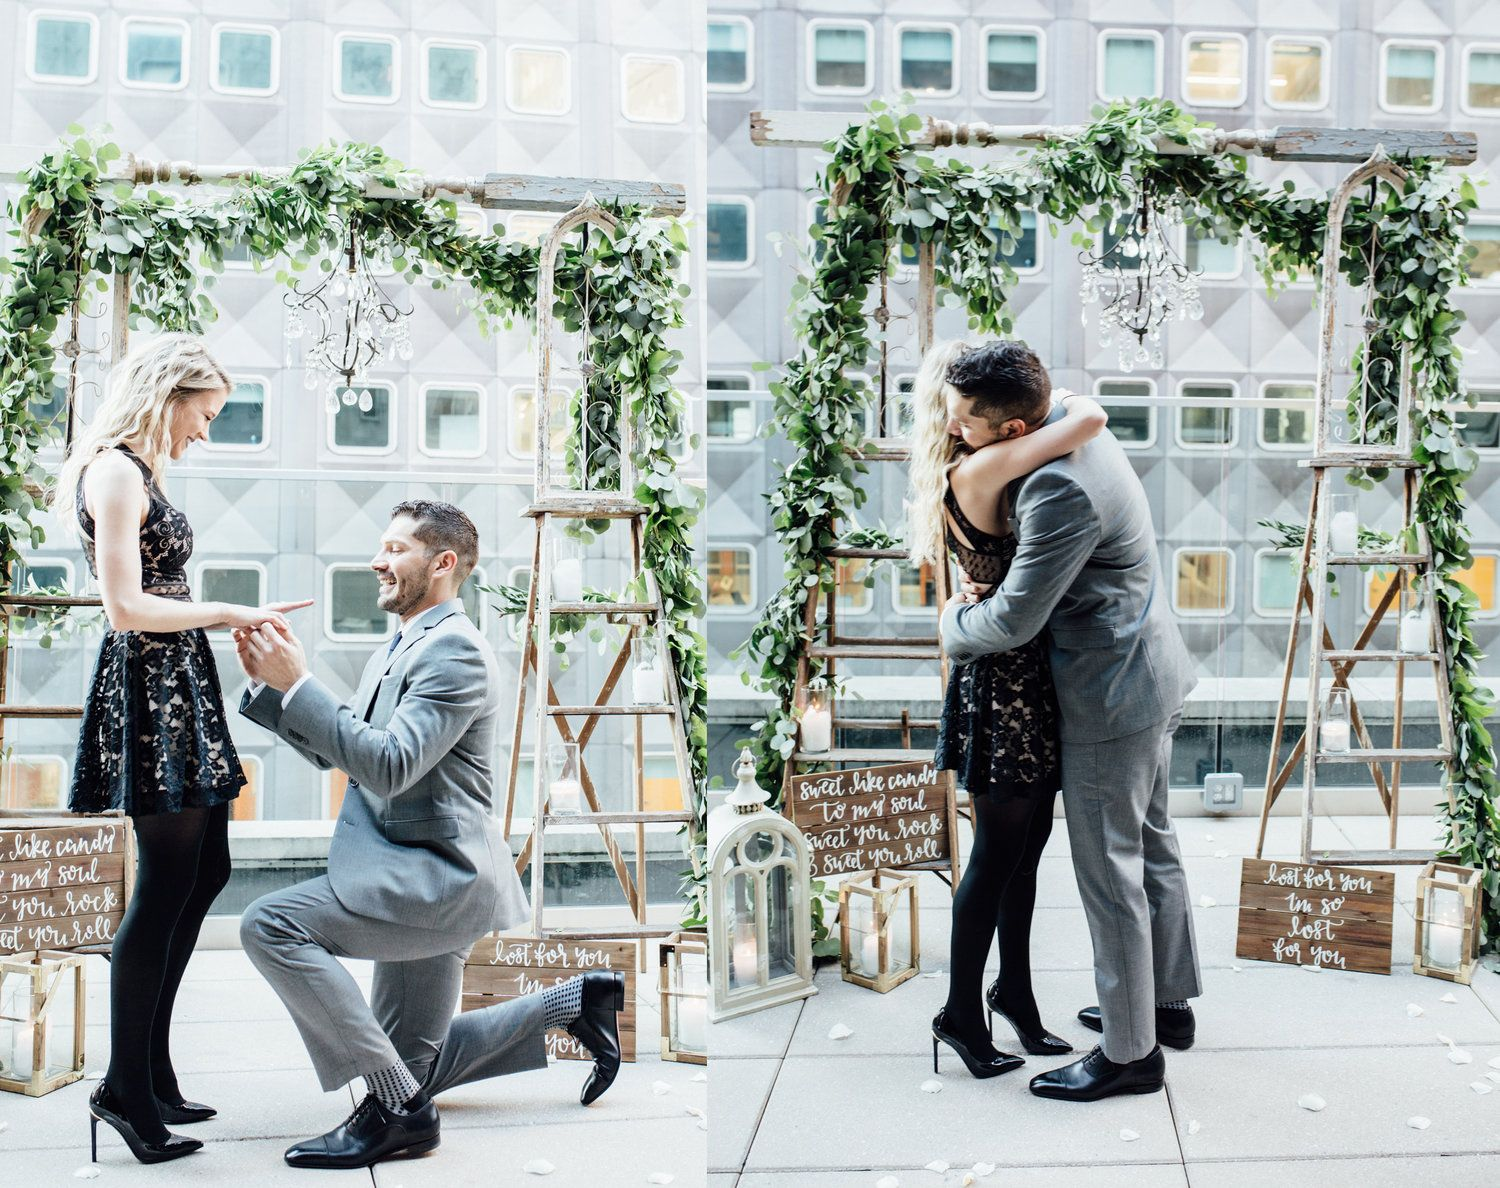 Ipw Reception Corporate Event Photographyorlando Wedding: Romantic Surprise Rooftop Proposal In Pittsburgh, PA